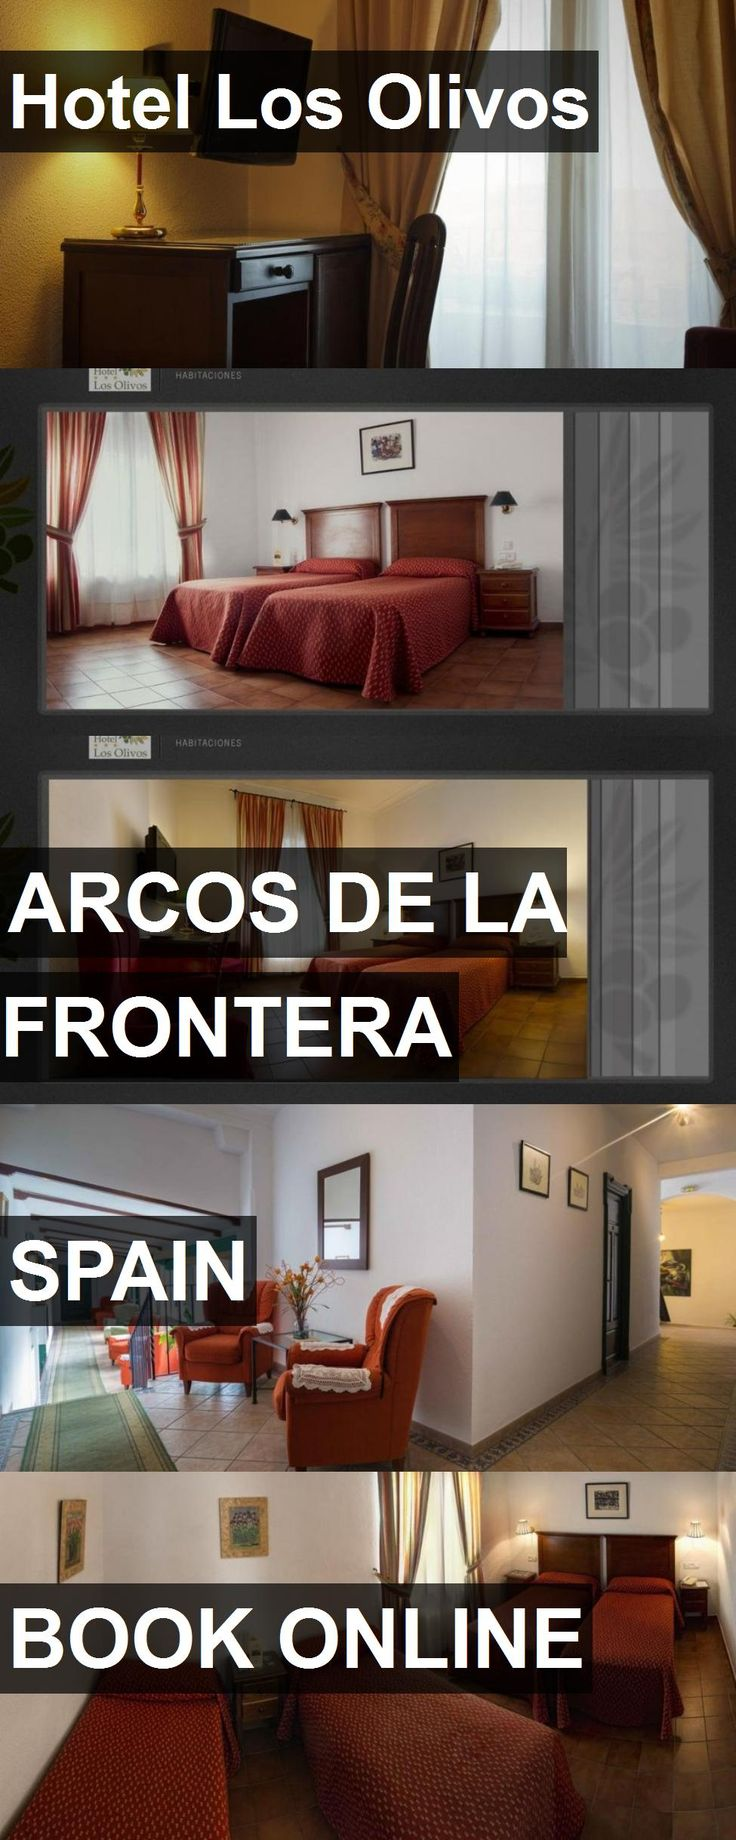 Hotel Los Olivos in Arcos de la Frontera, Spain. For more information, photos, reviews and best prices please follow the link. #Spain #ArcosdelaFrontera #travel #vacation #hotel